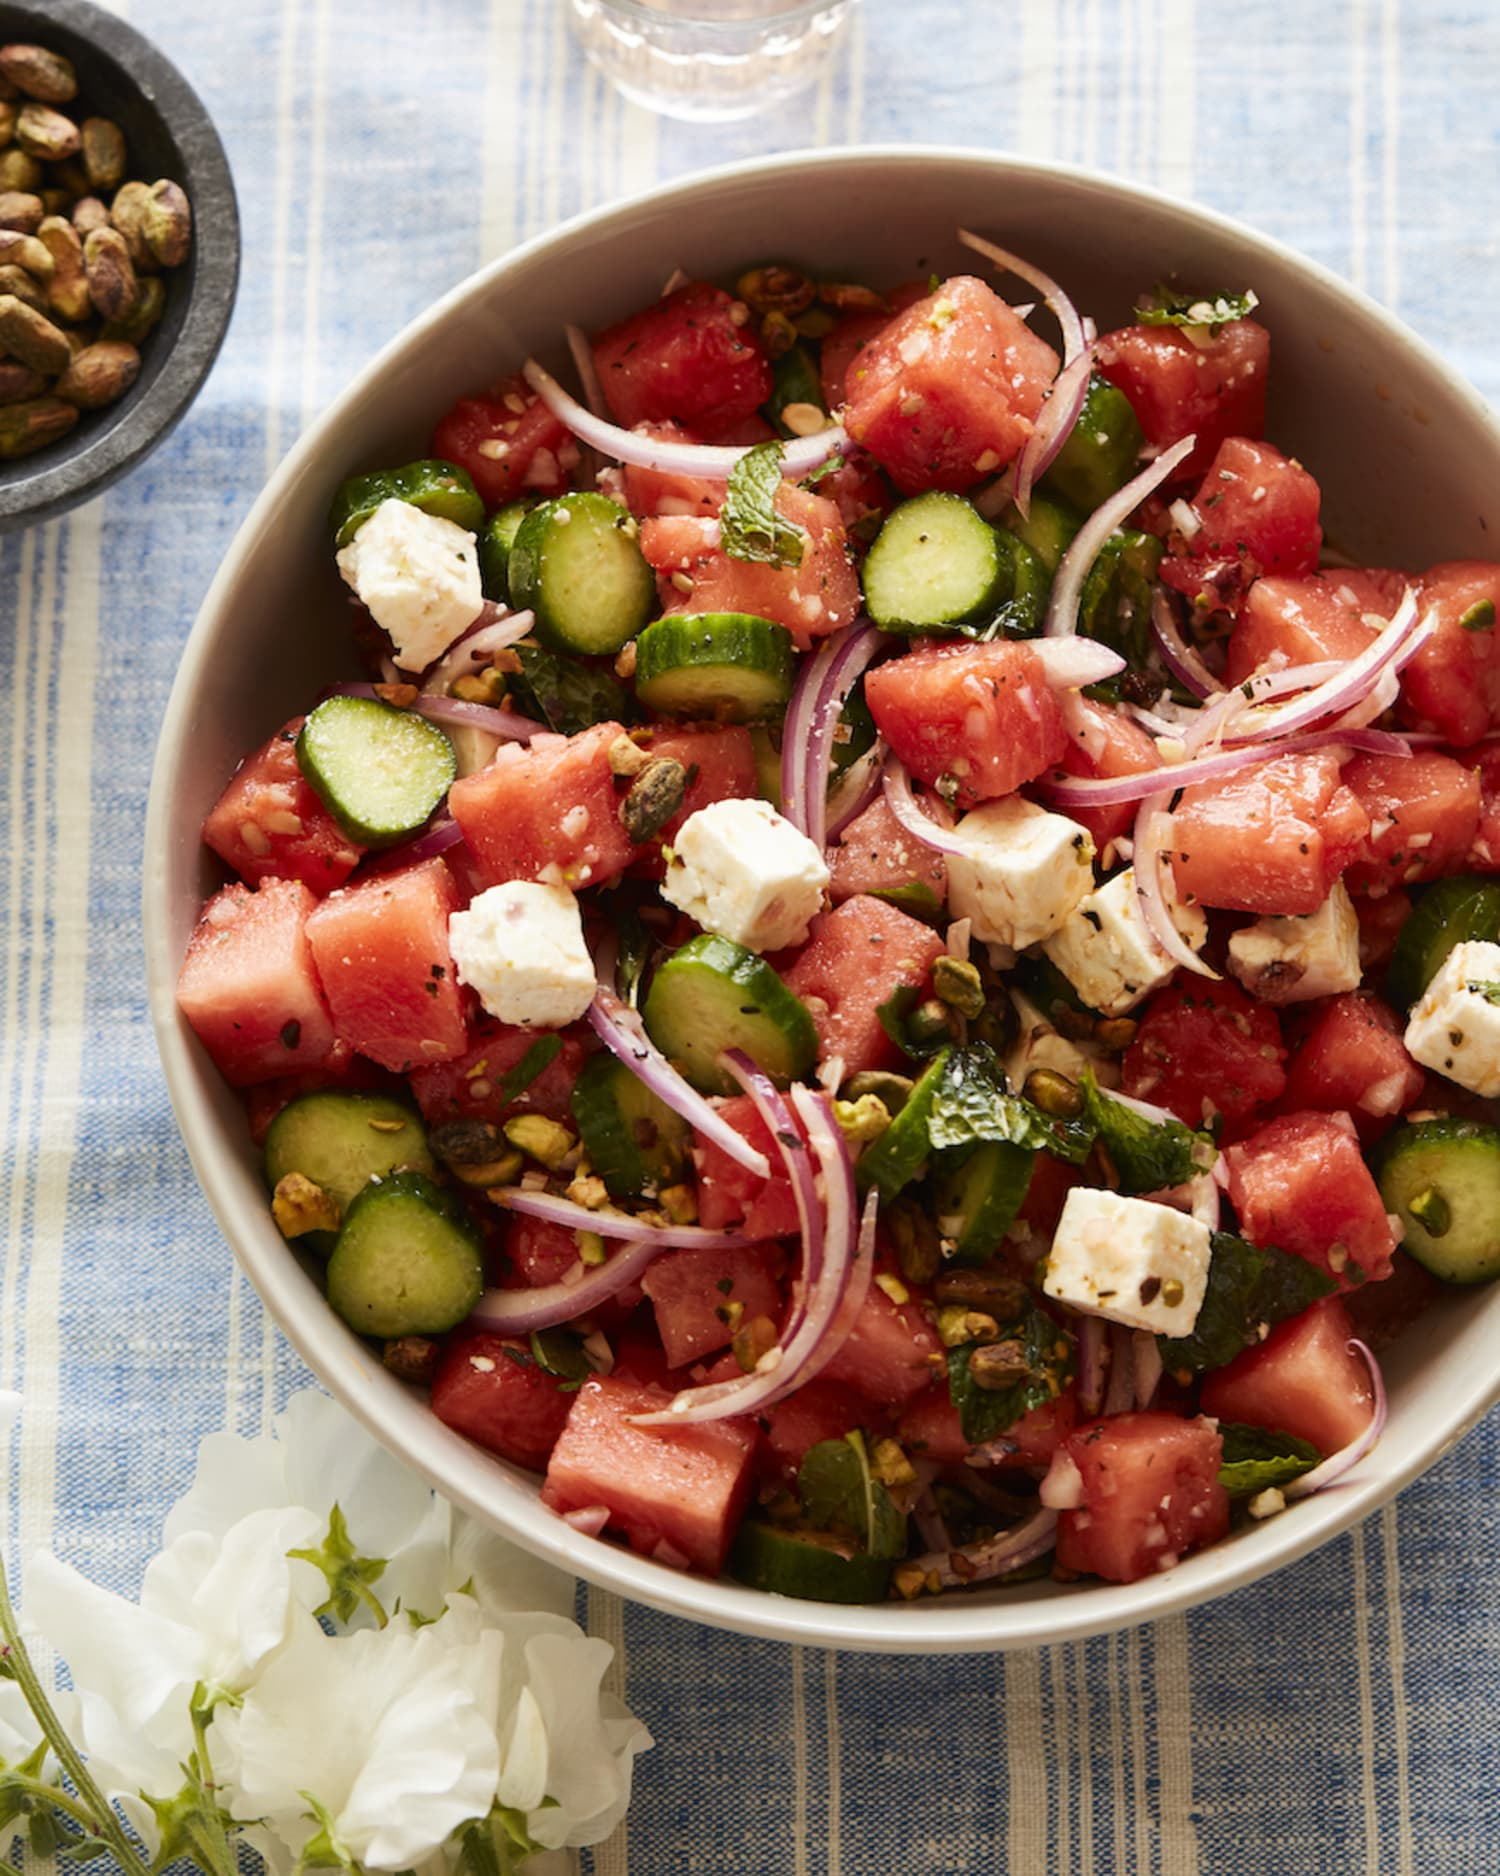 This Watermelon Cucumber Salad Is a Summer Must-Make